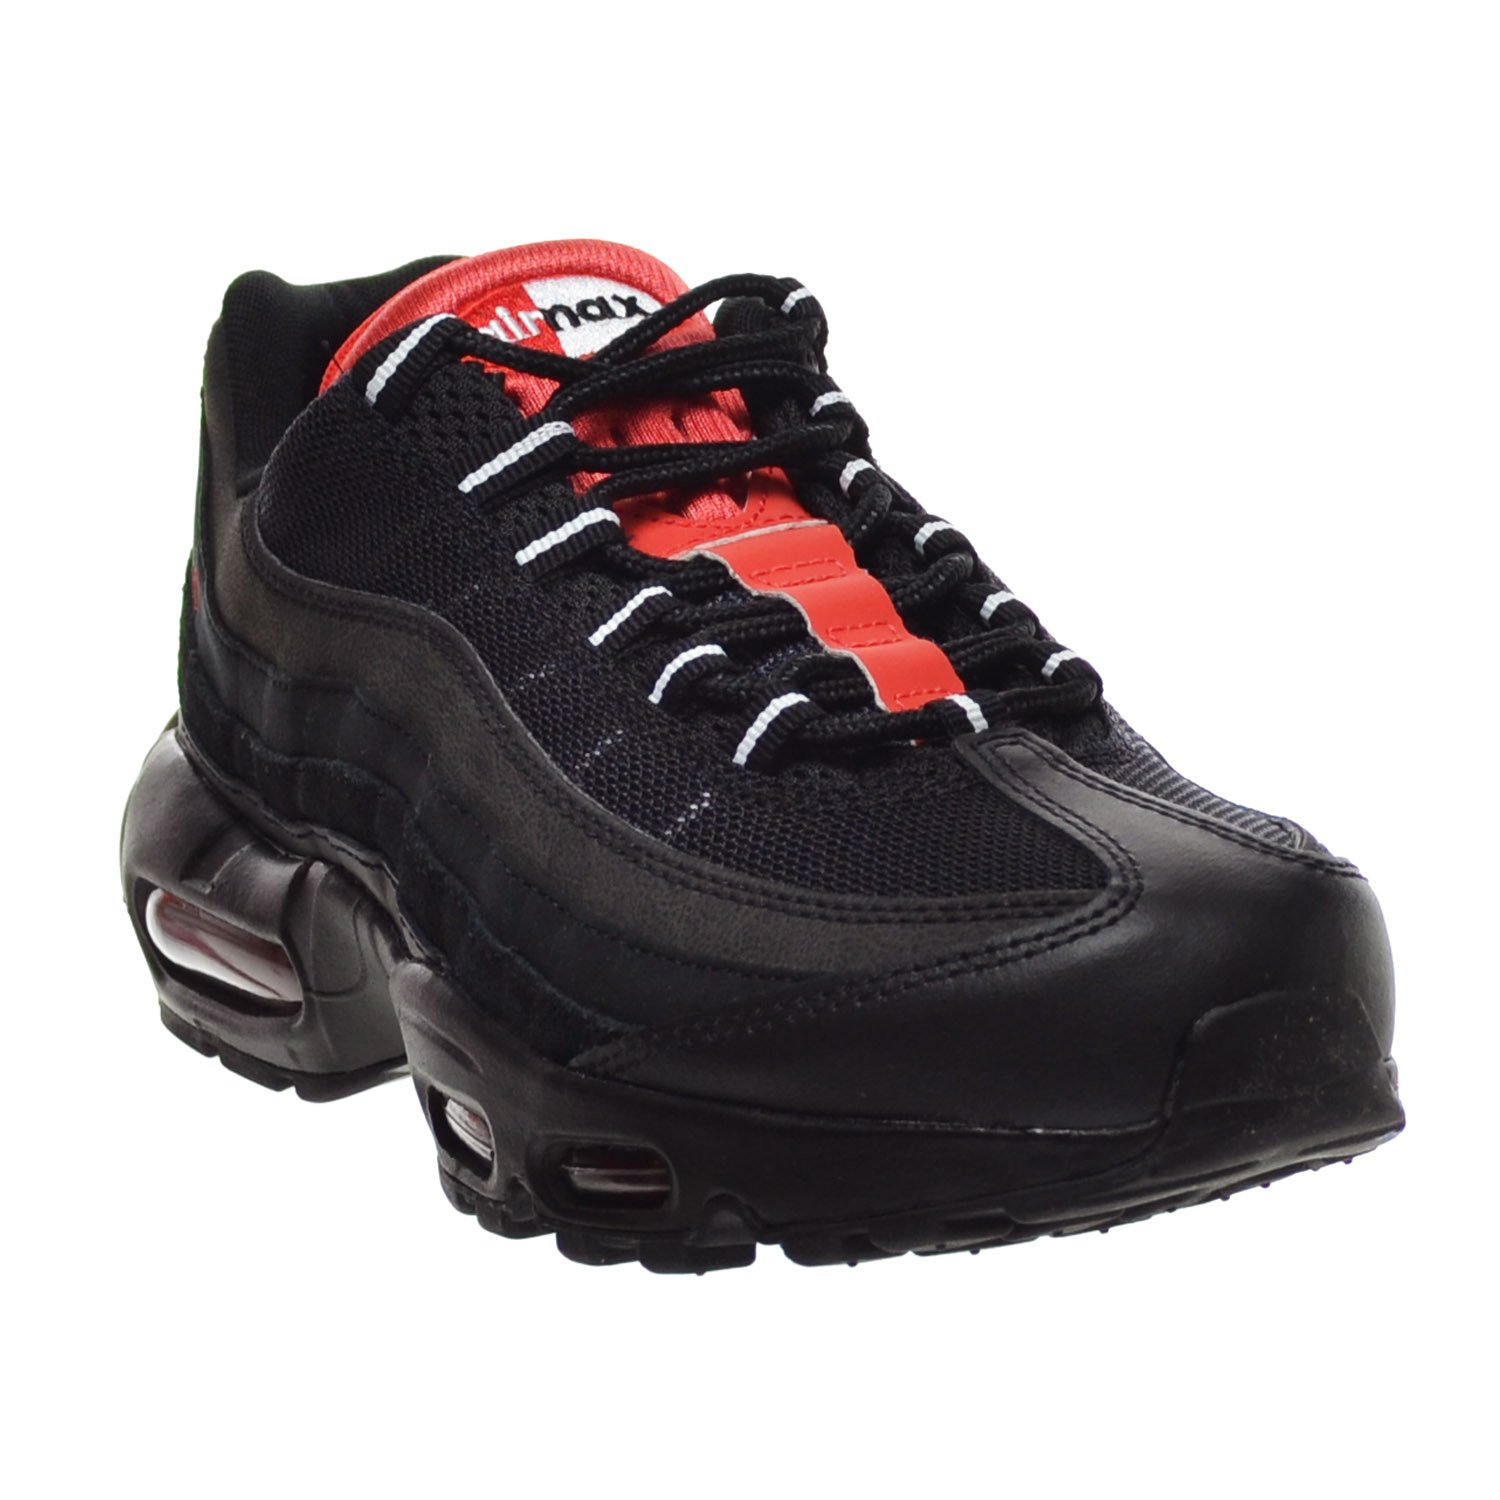 brand new e4e1b aaa80 Amazon.com   Nike Air Max 95 Essential Men s Shoes Black Challenge Red White  749766-016 (9.5 D(M) US)   Fashion Sneakers